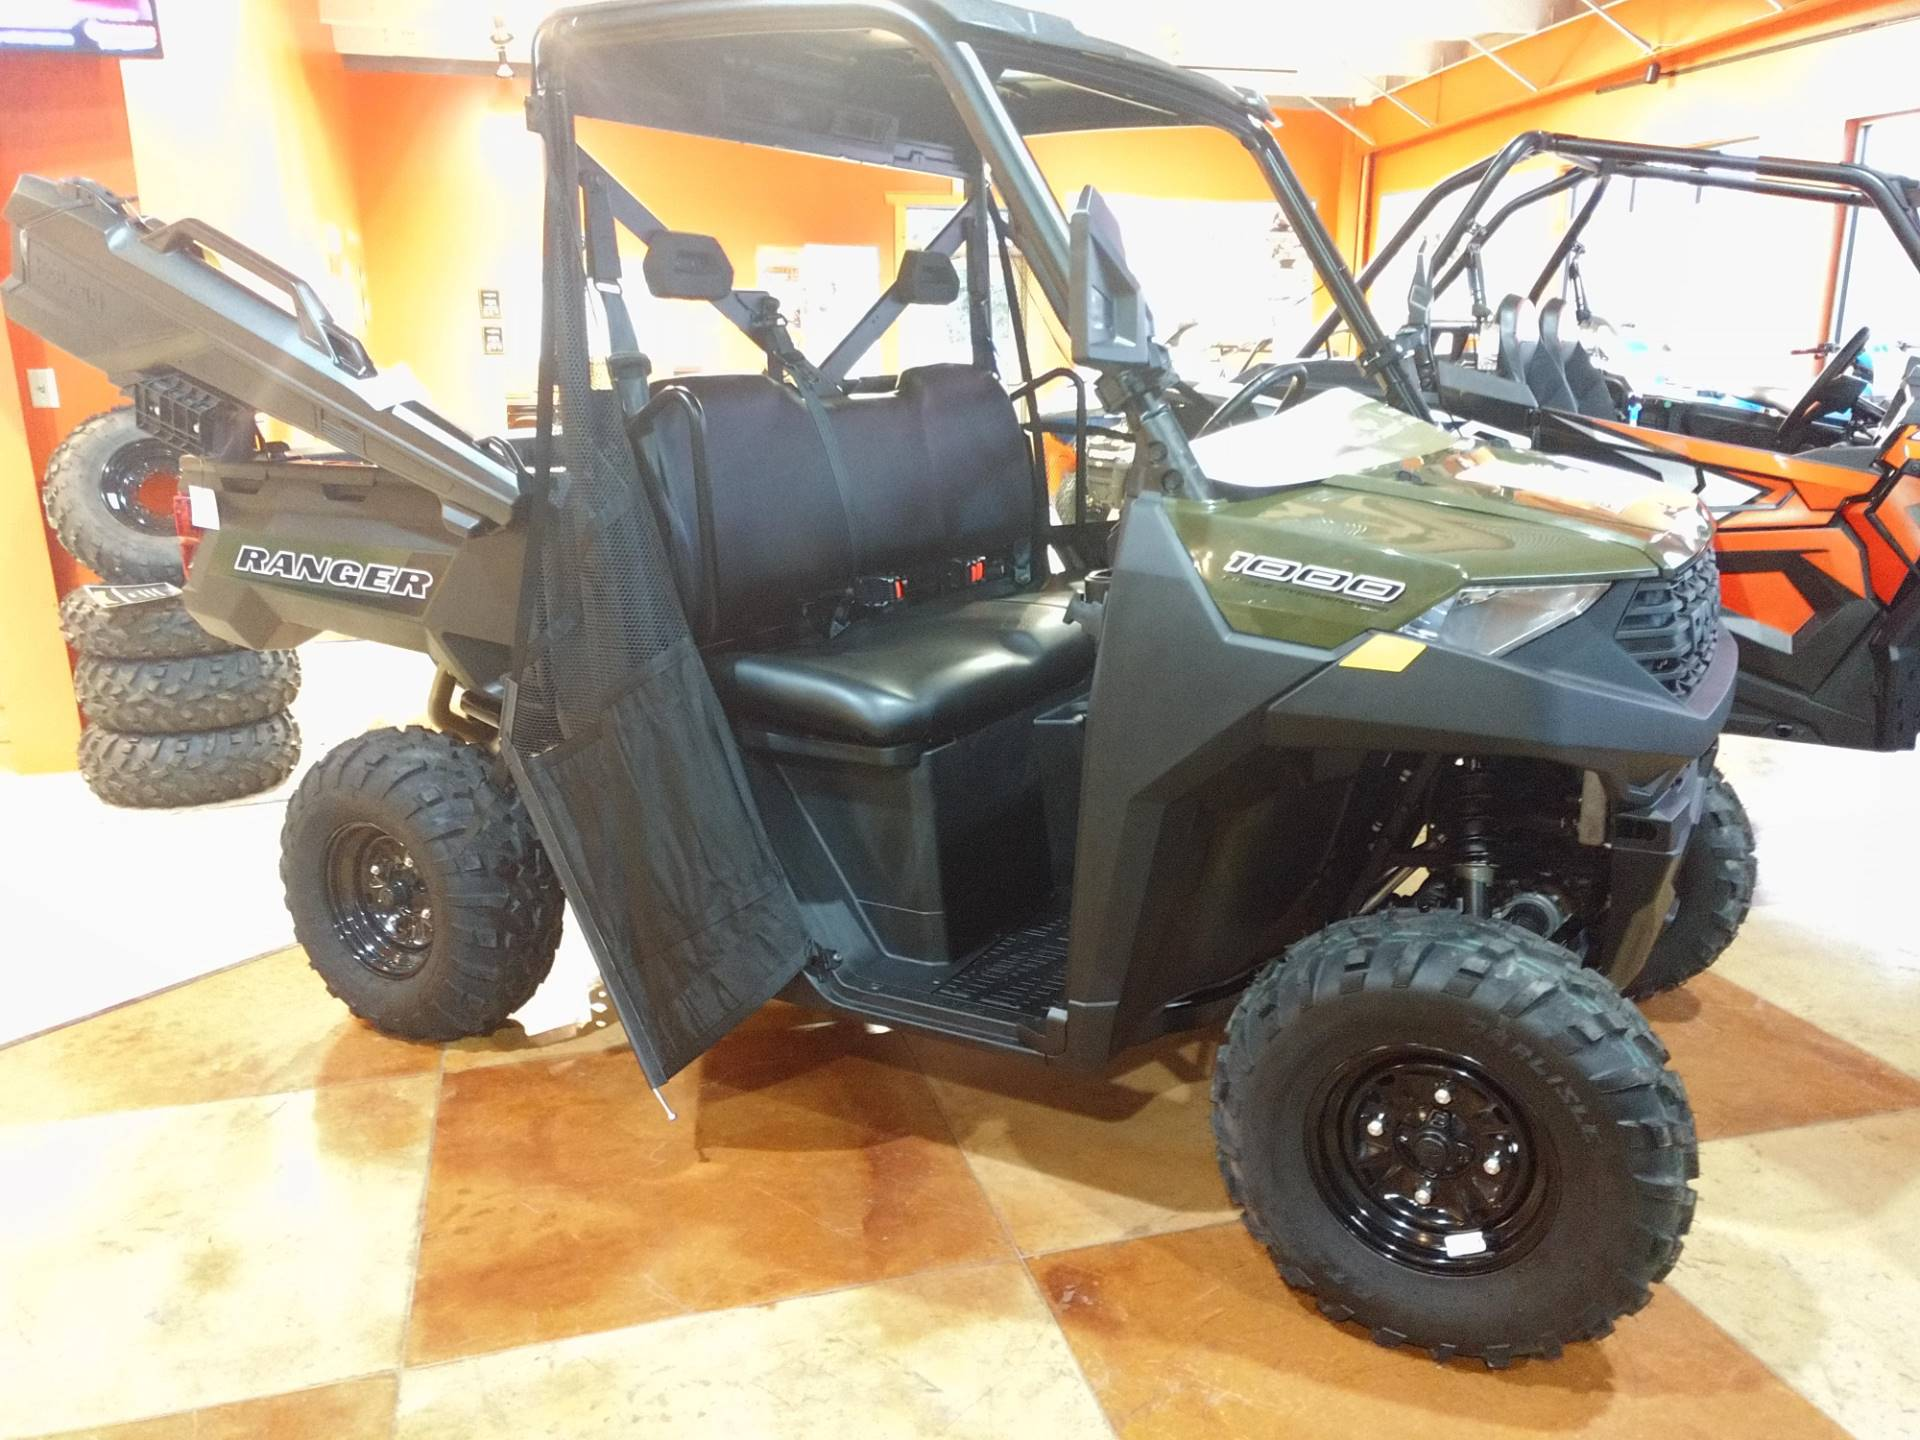 2020 Polaris Ranger 1000 in Hamburg, New York - Photo 1